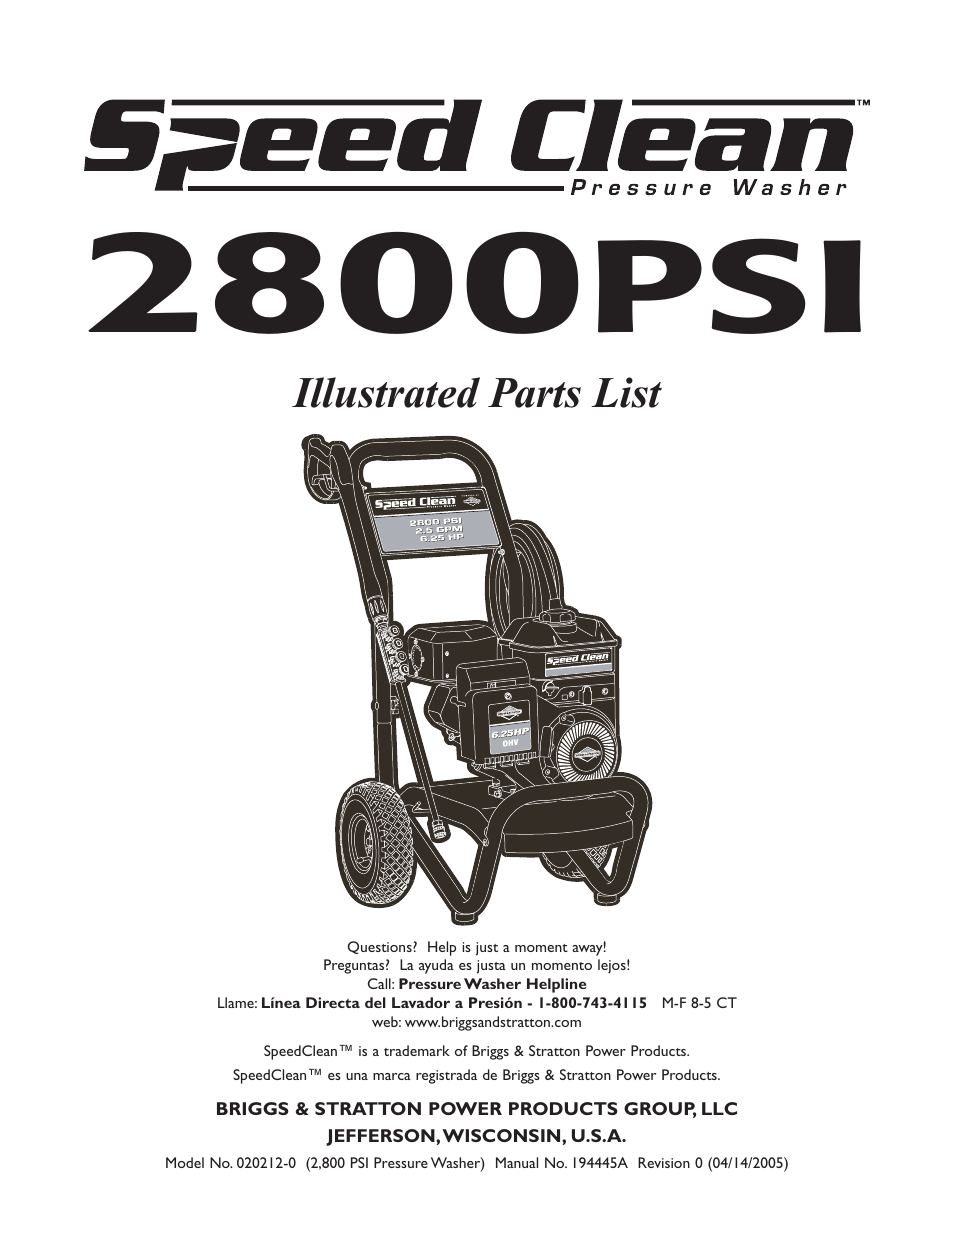 Briggs Stratton Speed Clean 020212 0 User Manual 3 Pages Also And Engine Diagram Parts List For 2800 Psi